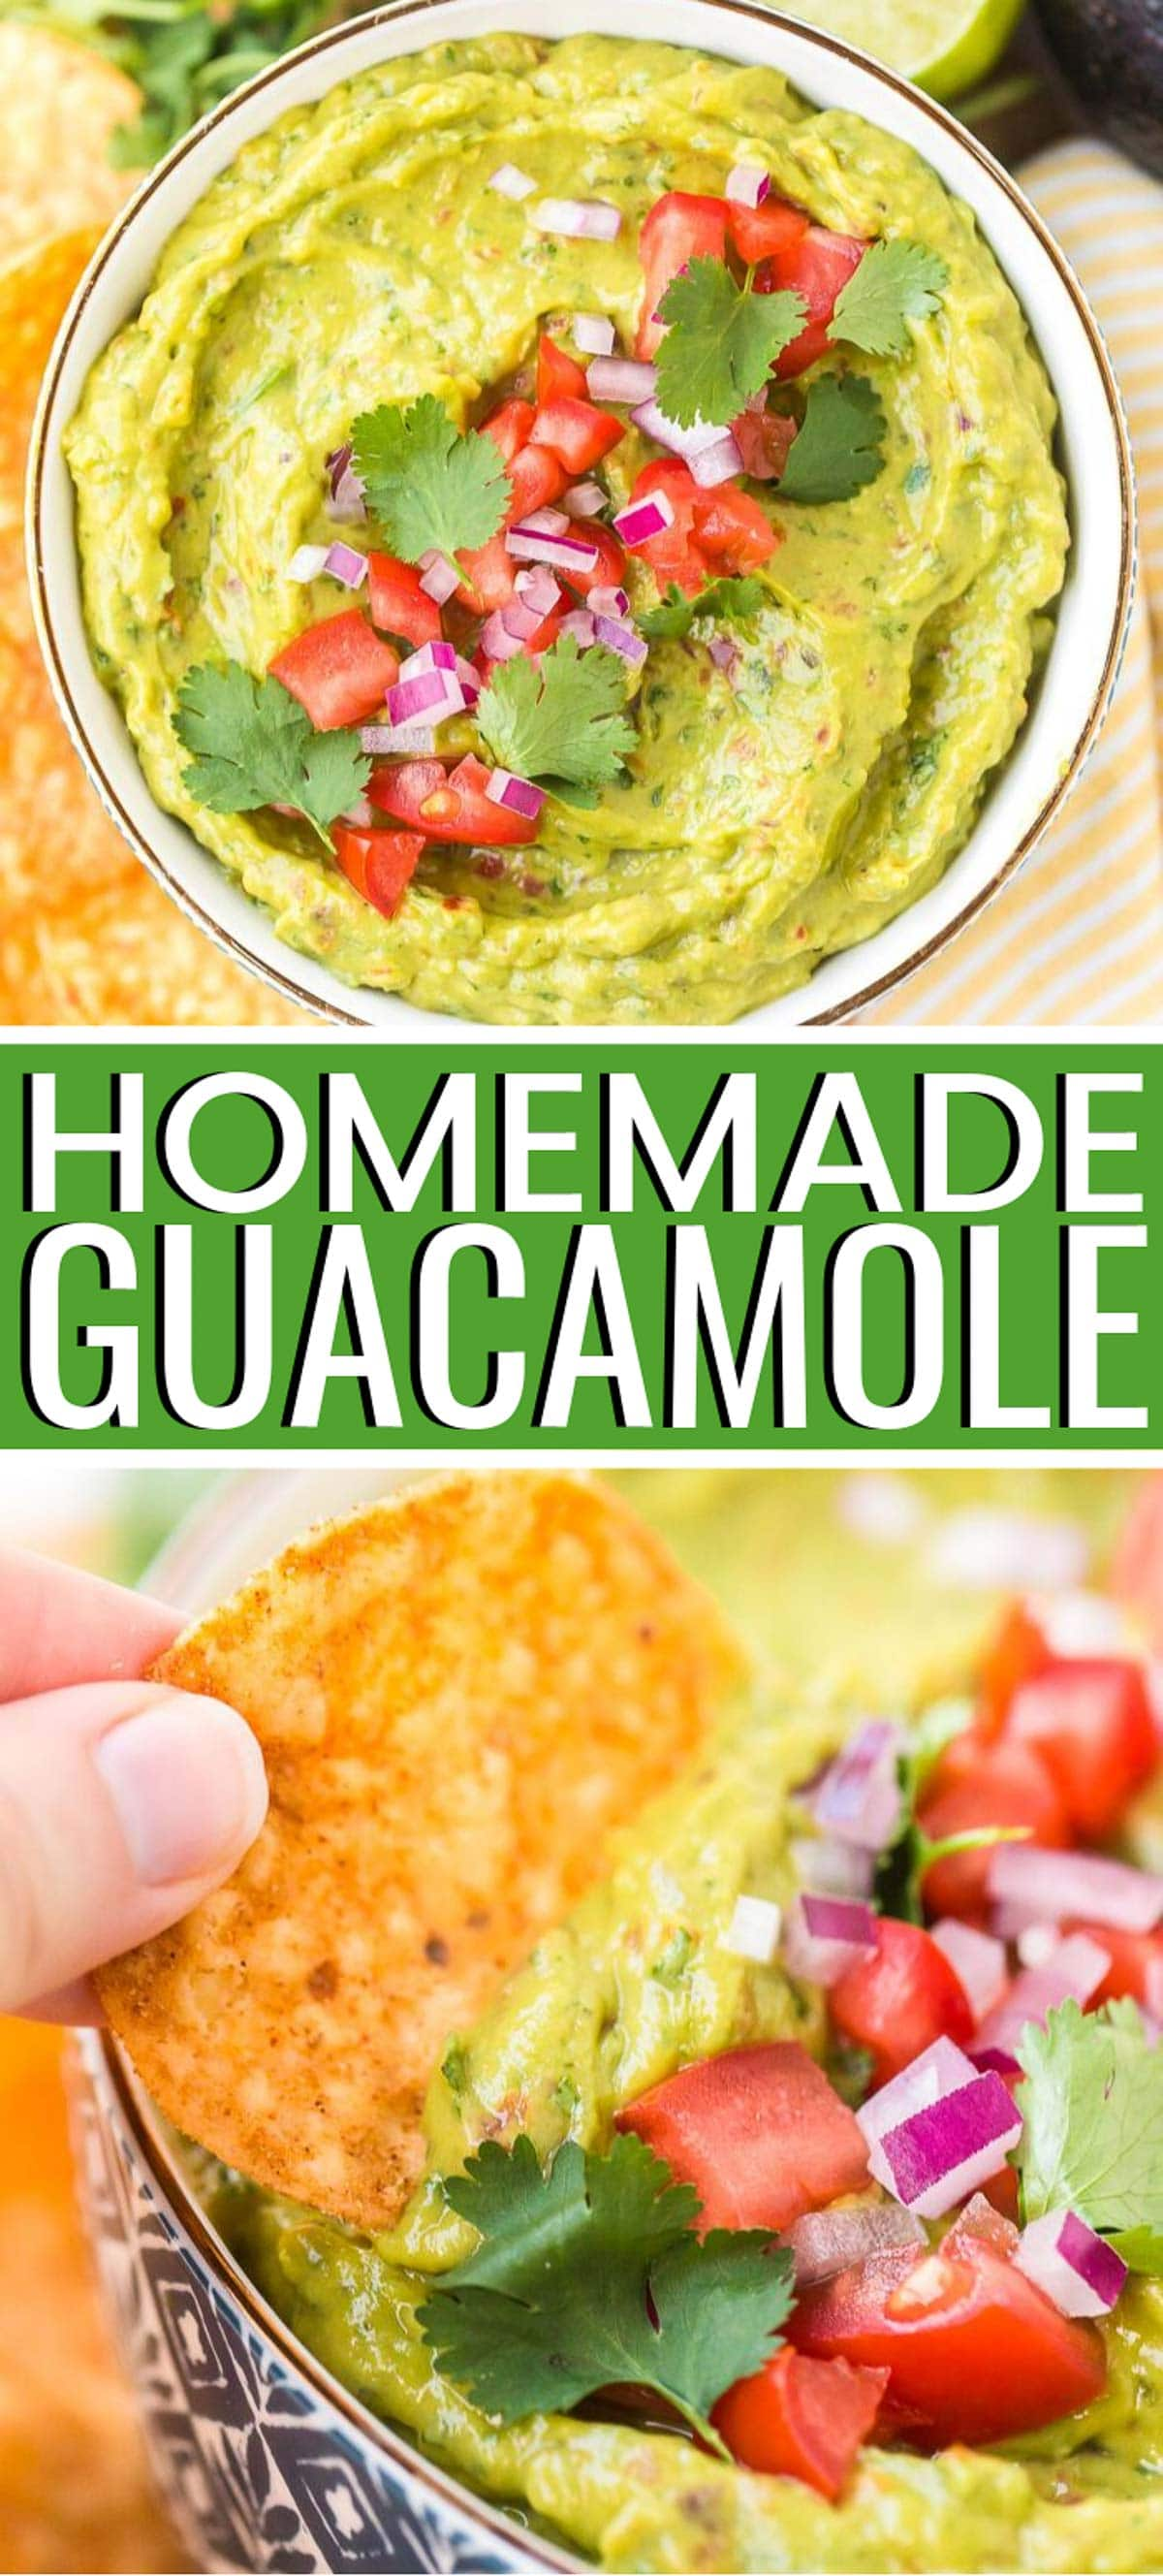 This Guacamole recipe is ultra creamy and flavorful made with fresh veggies and herbs and a hint of lime juice and a touch of heat! This recipe some great tips for making this addictive appetizer! via @sugarandsoulco